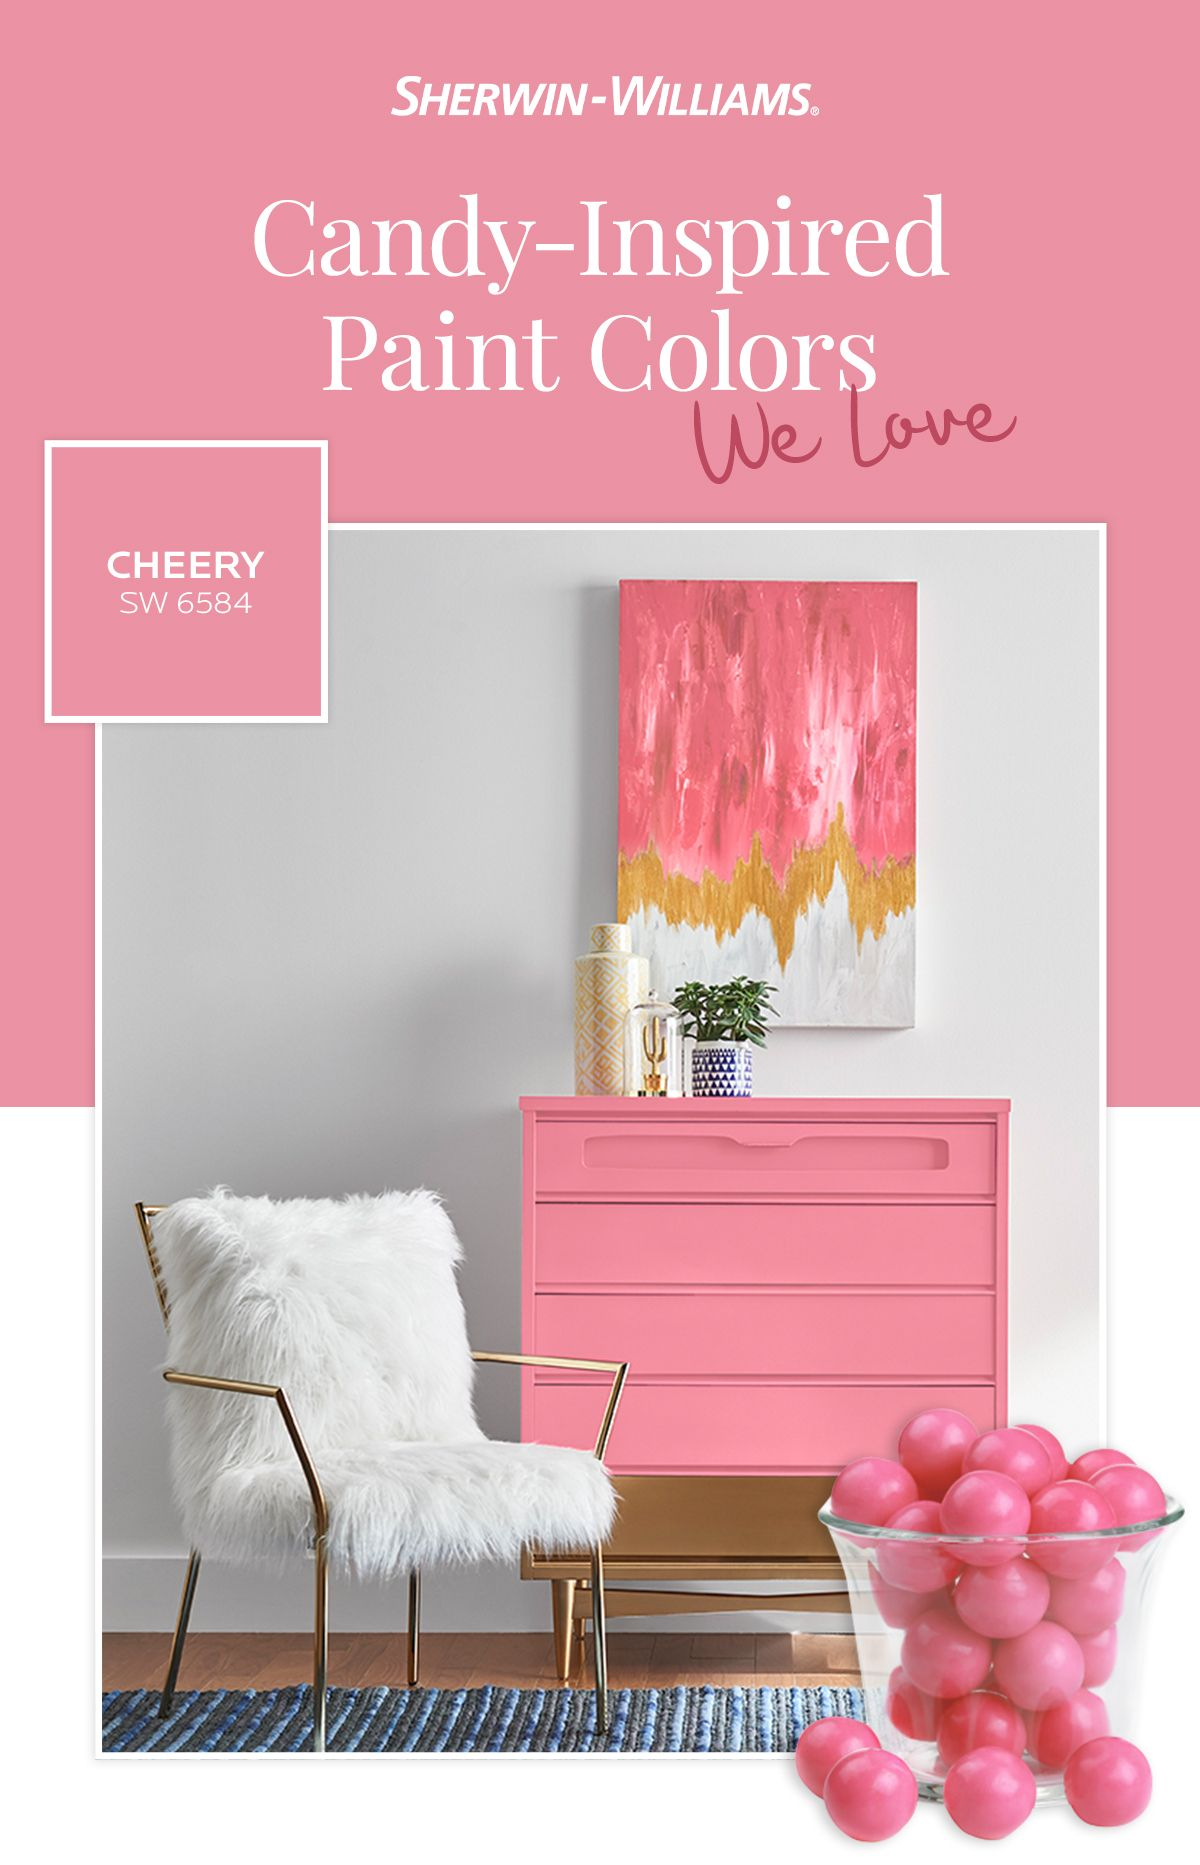 Paint Colors Inspired By The Candy Shop Cheery Sw 6584 Paint Colors Paint Color Inspiration Pink Paint Colors Room paint color inspiration